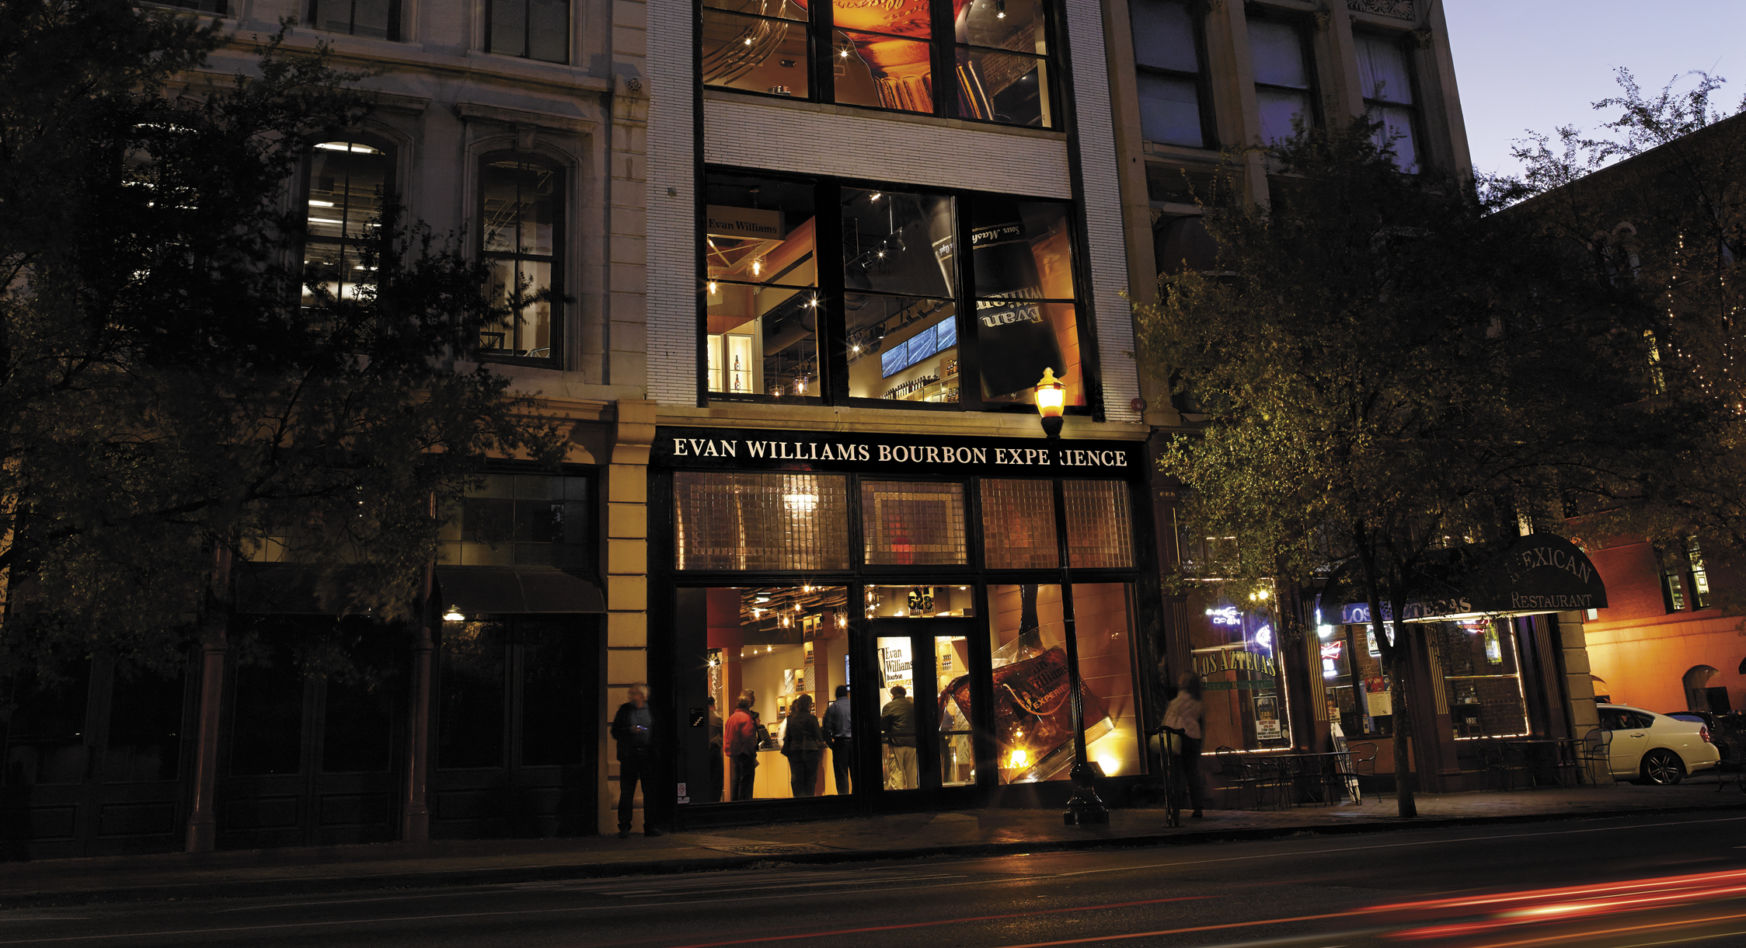 Evan Williams Bourbon Experience night